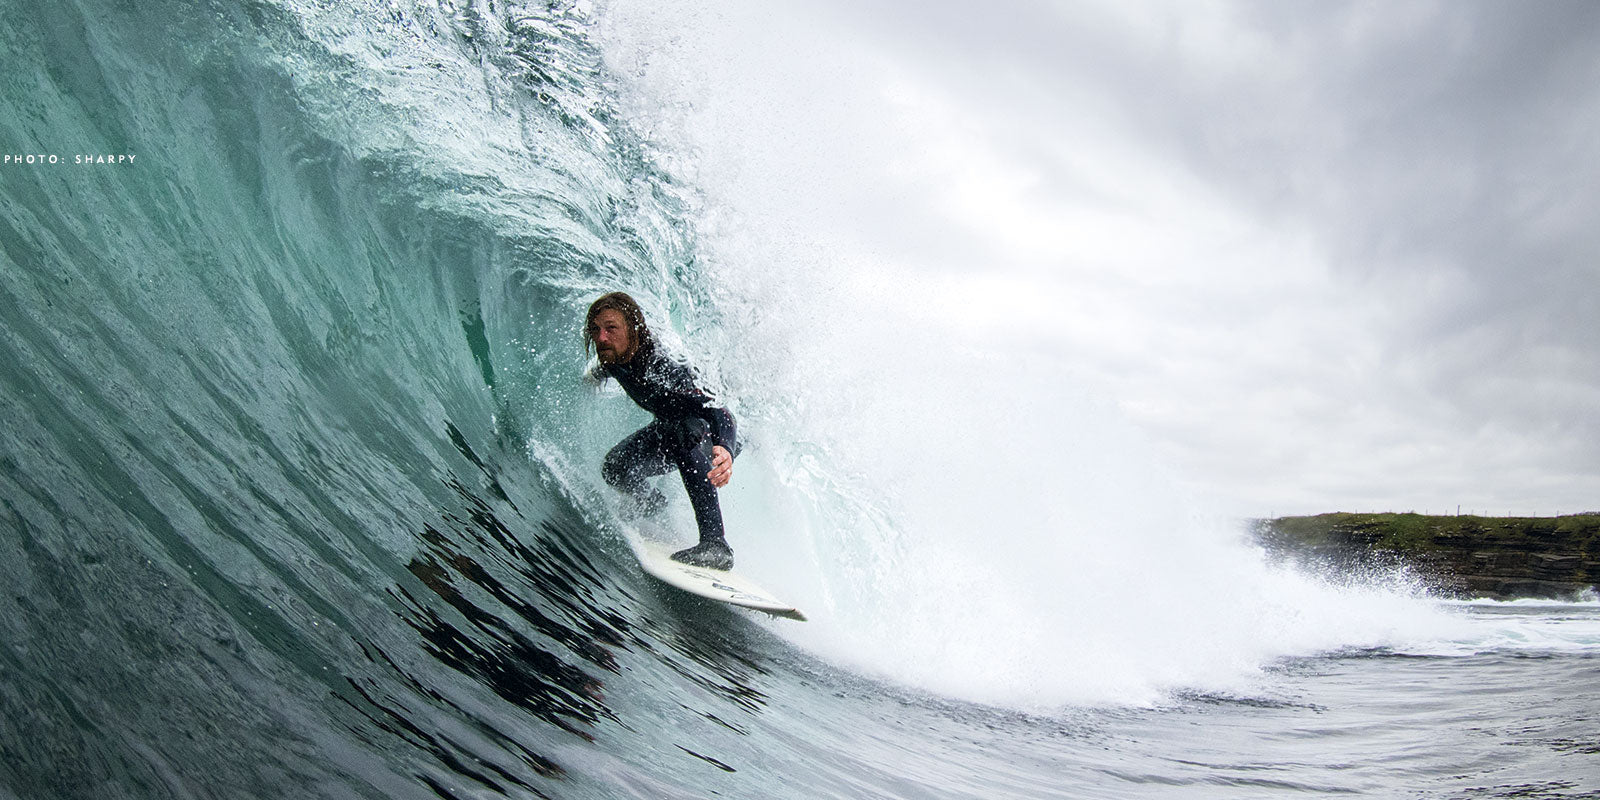 Ben Skinner surfer & shaper Photo Credit: SHARPY